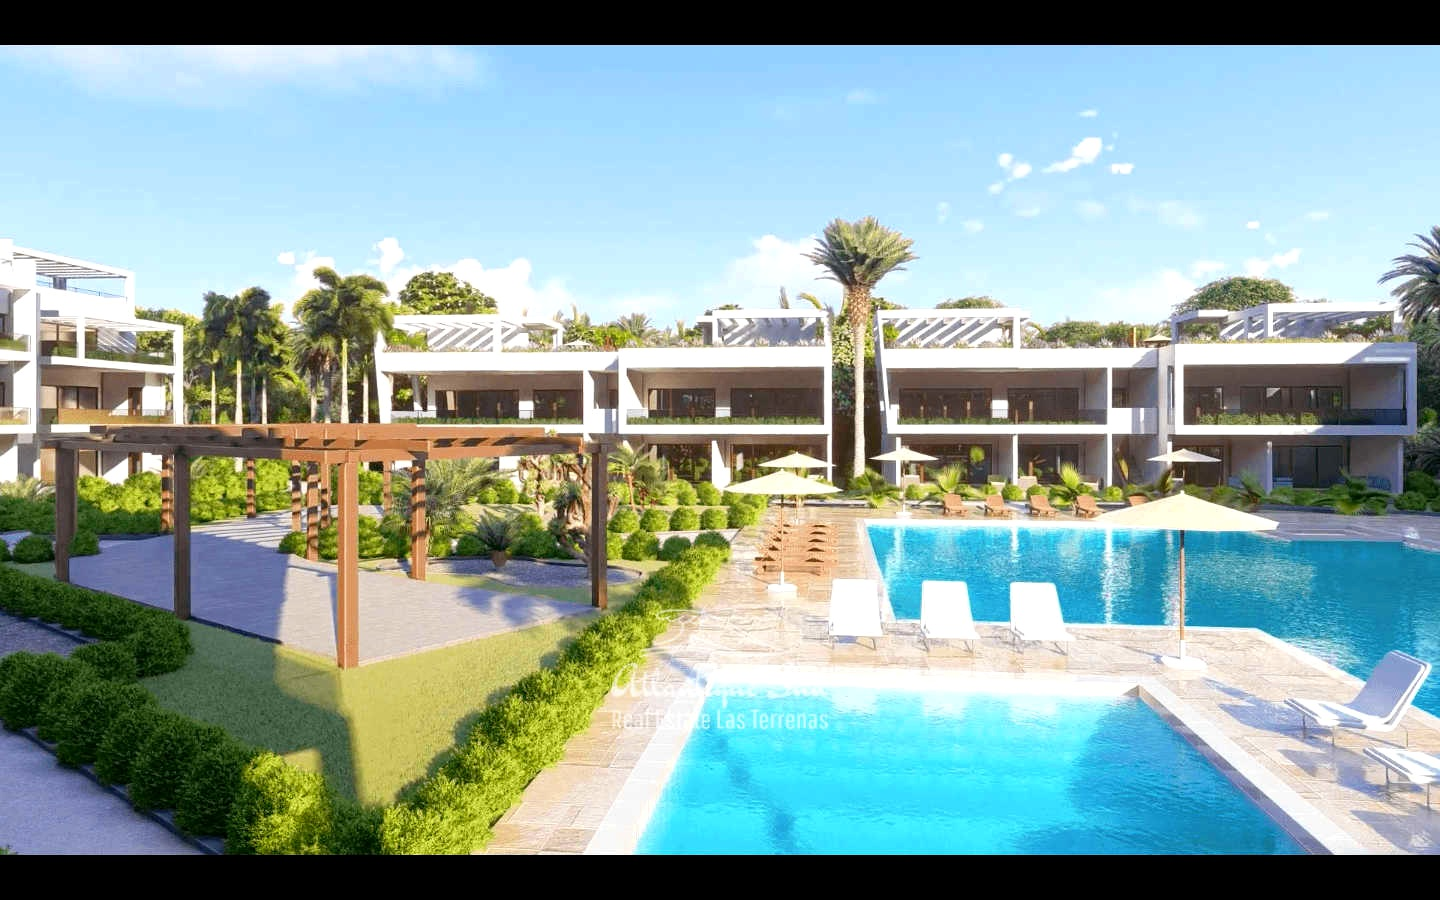 Condos for sale in Las Terrenas Dominican Republic 2.jpg